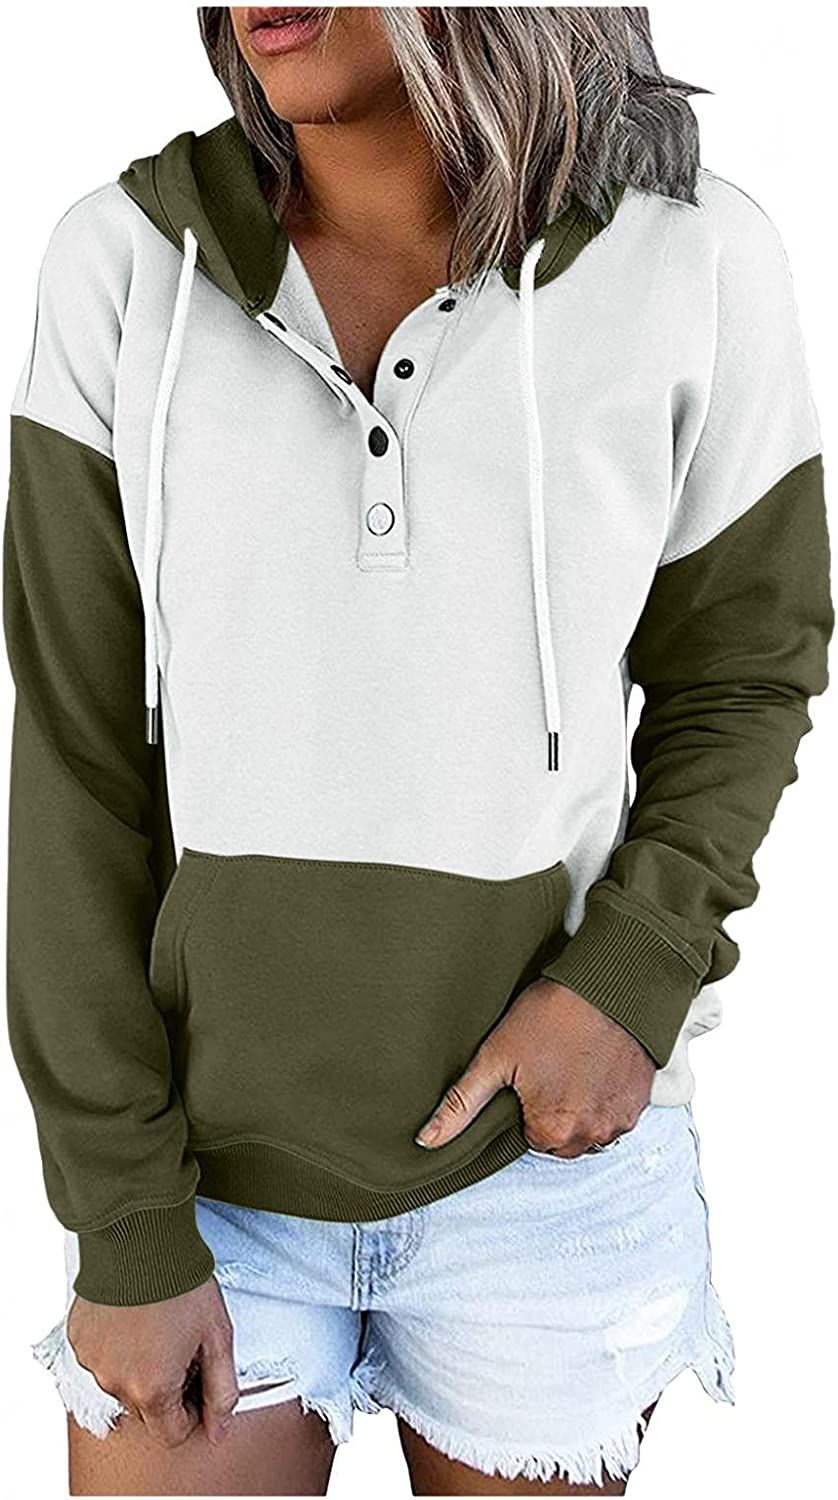 Toeava Hoodies for Women,Women's Color Block Hoodies Sweatshirts Button Down V Neck Long Sleeve Pullover with Pocket